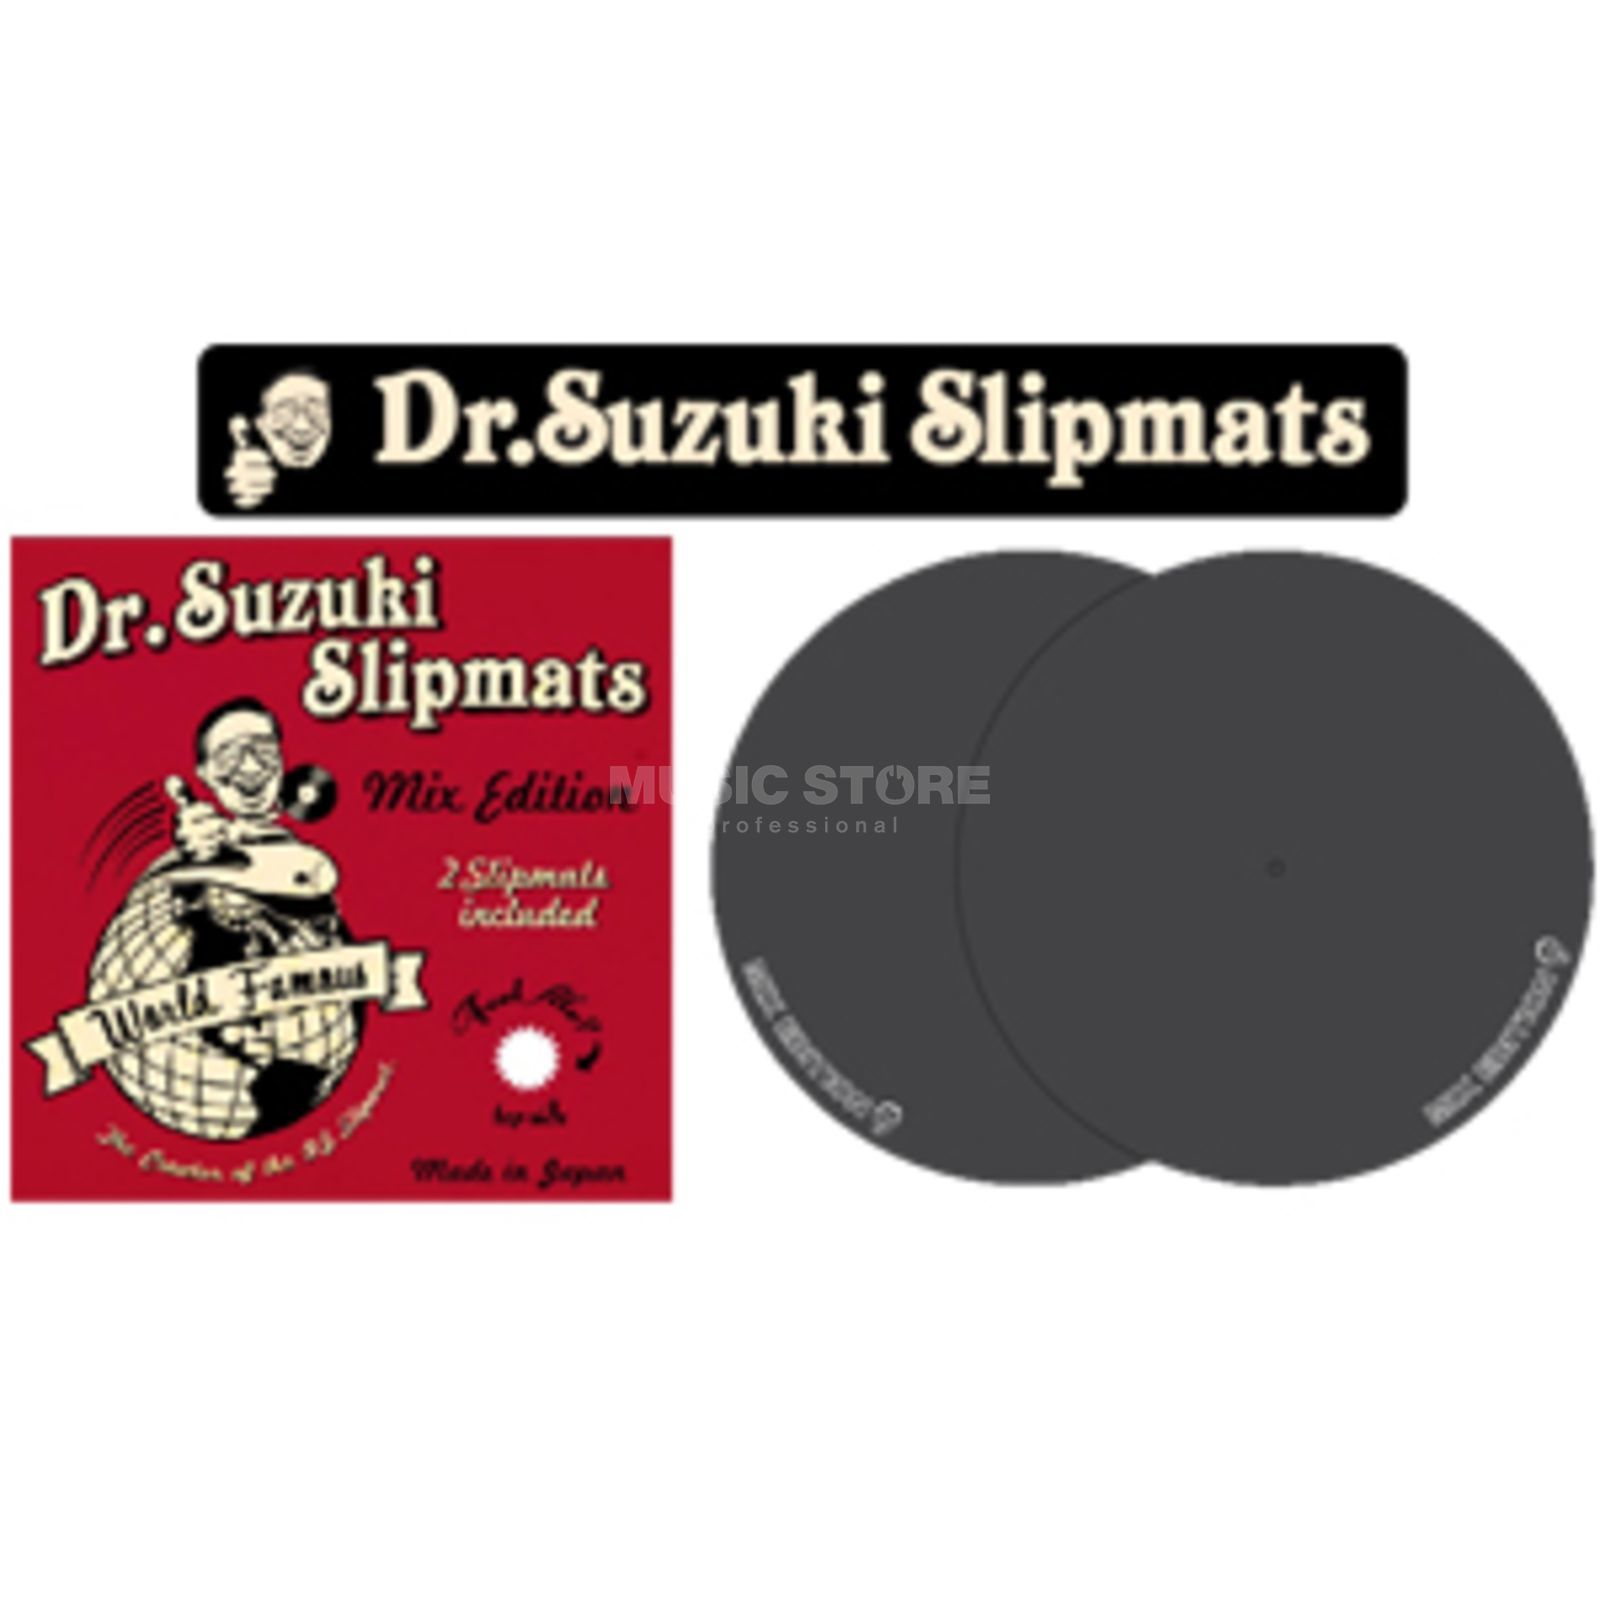 Tablecloth Dr.Suzuki Mix Edition Slipmats black (pair) Product Image